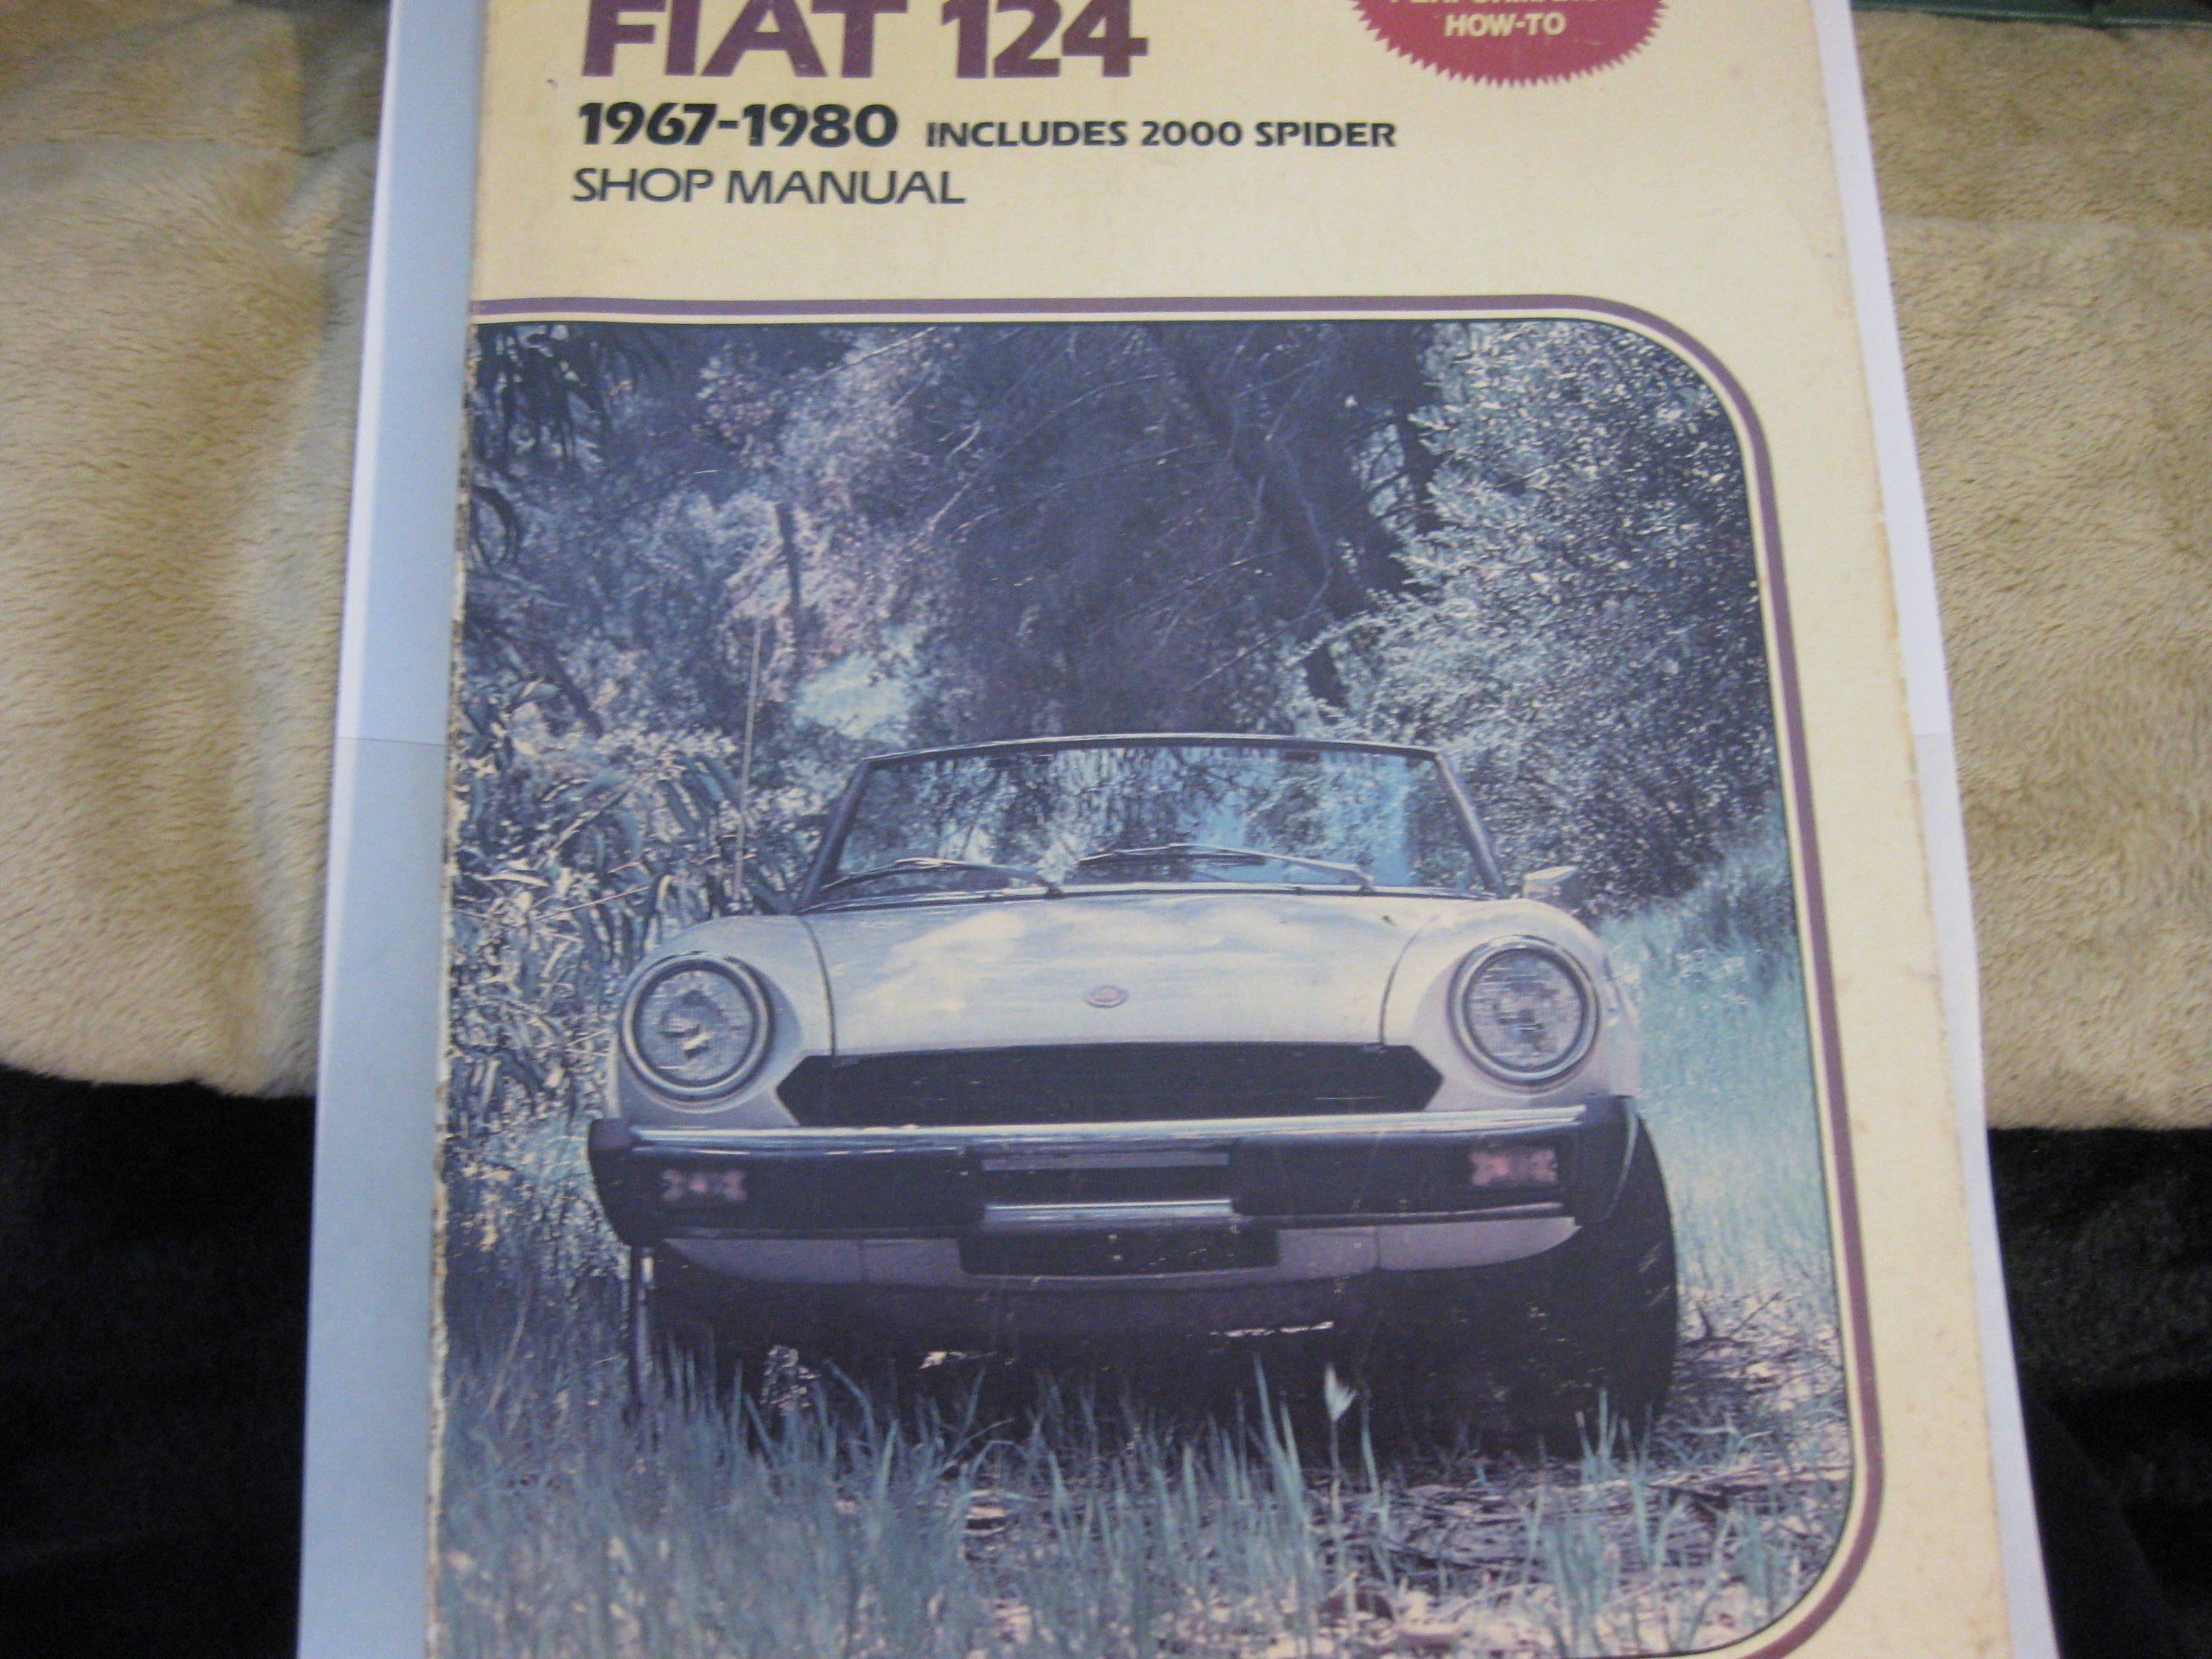 Fiat 124 Coupe Spider and 2000 Spider Includes Turbo Spider 1971-1984 Shop Manual A156: Amazon.es: Mike Bishop: Libros en idiomas extranjeros